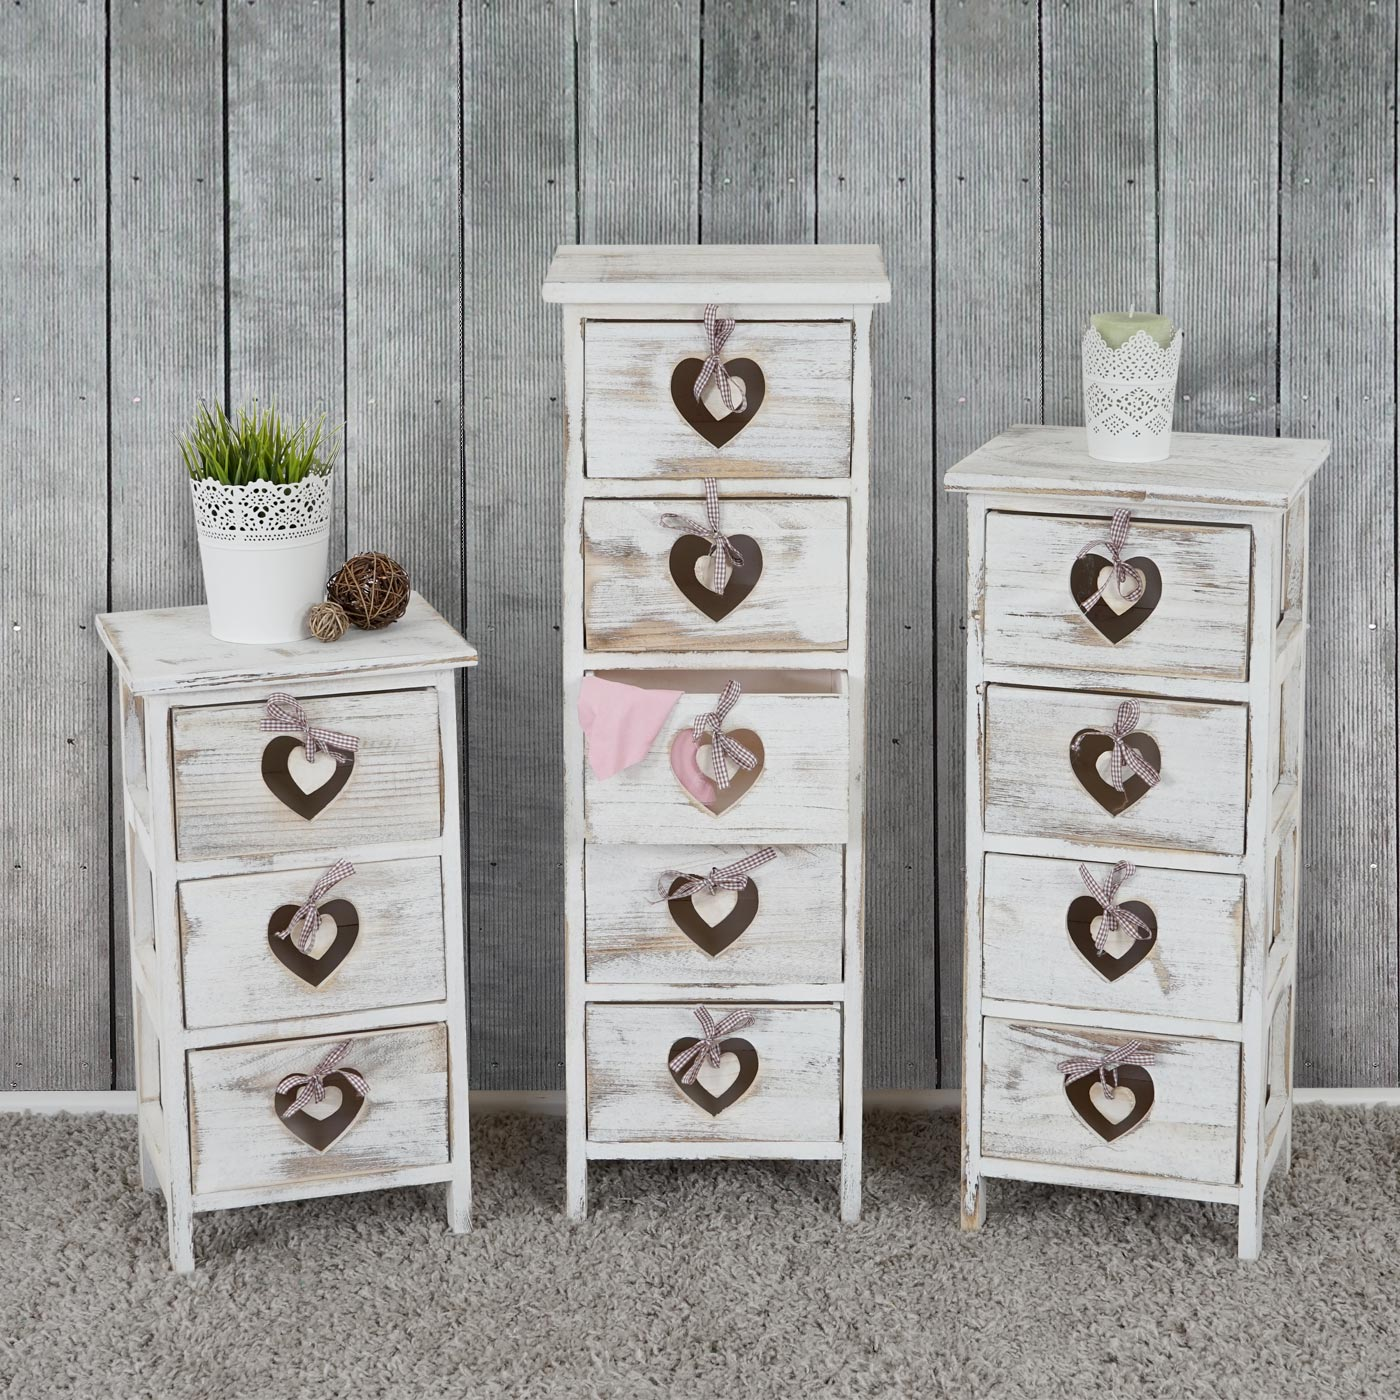 kommode forli schubladenkommode schrank shabby look vintage wei ebay. Black Bedroom Furniture Sets. Home Design Ideas